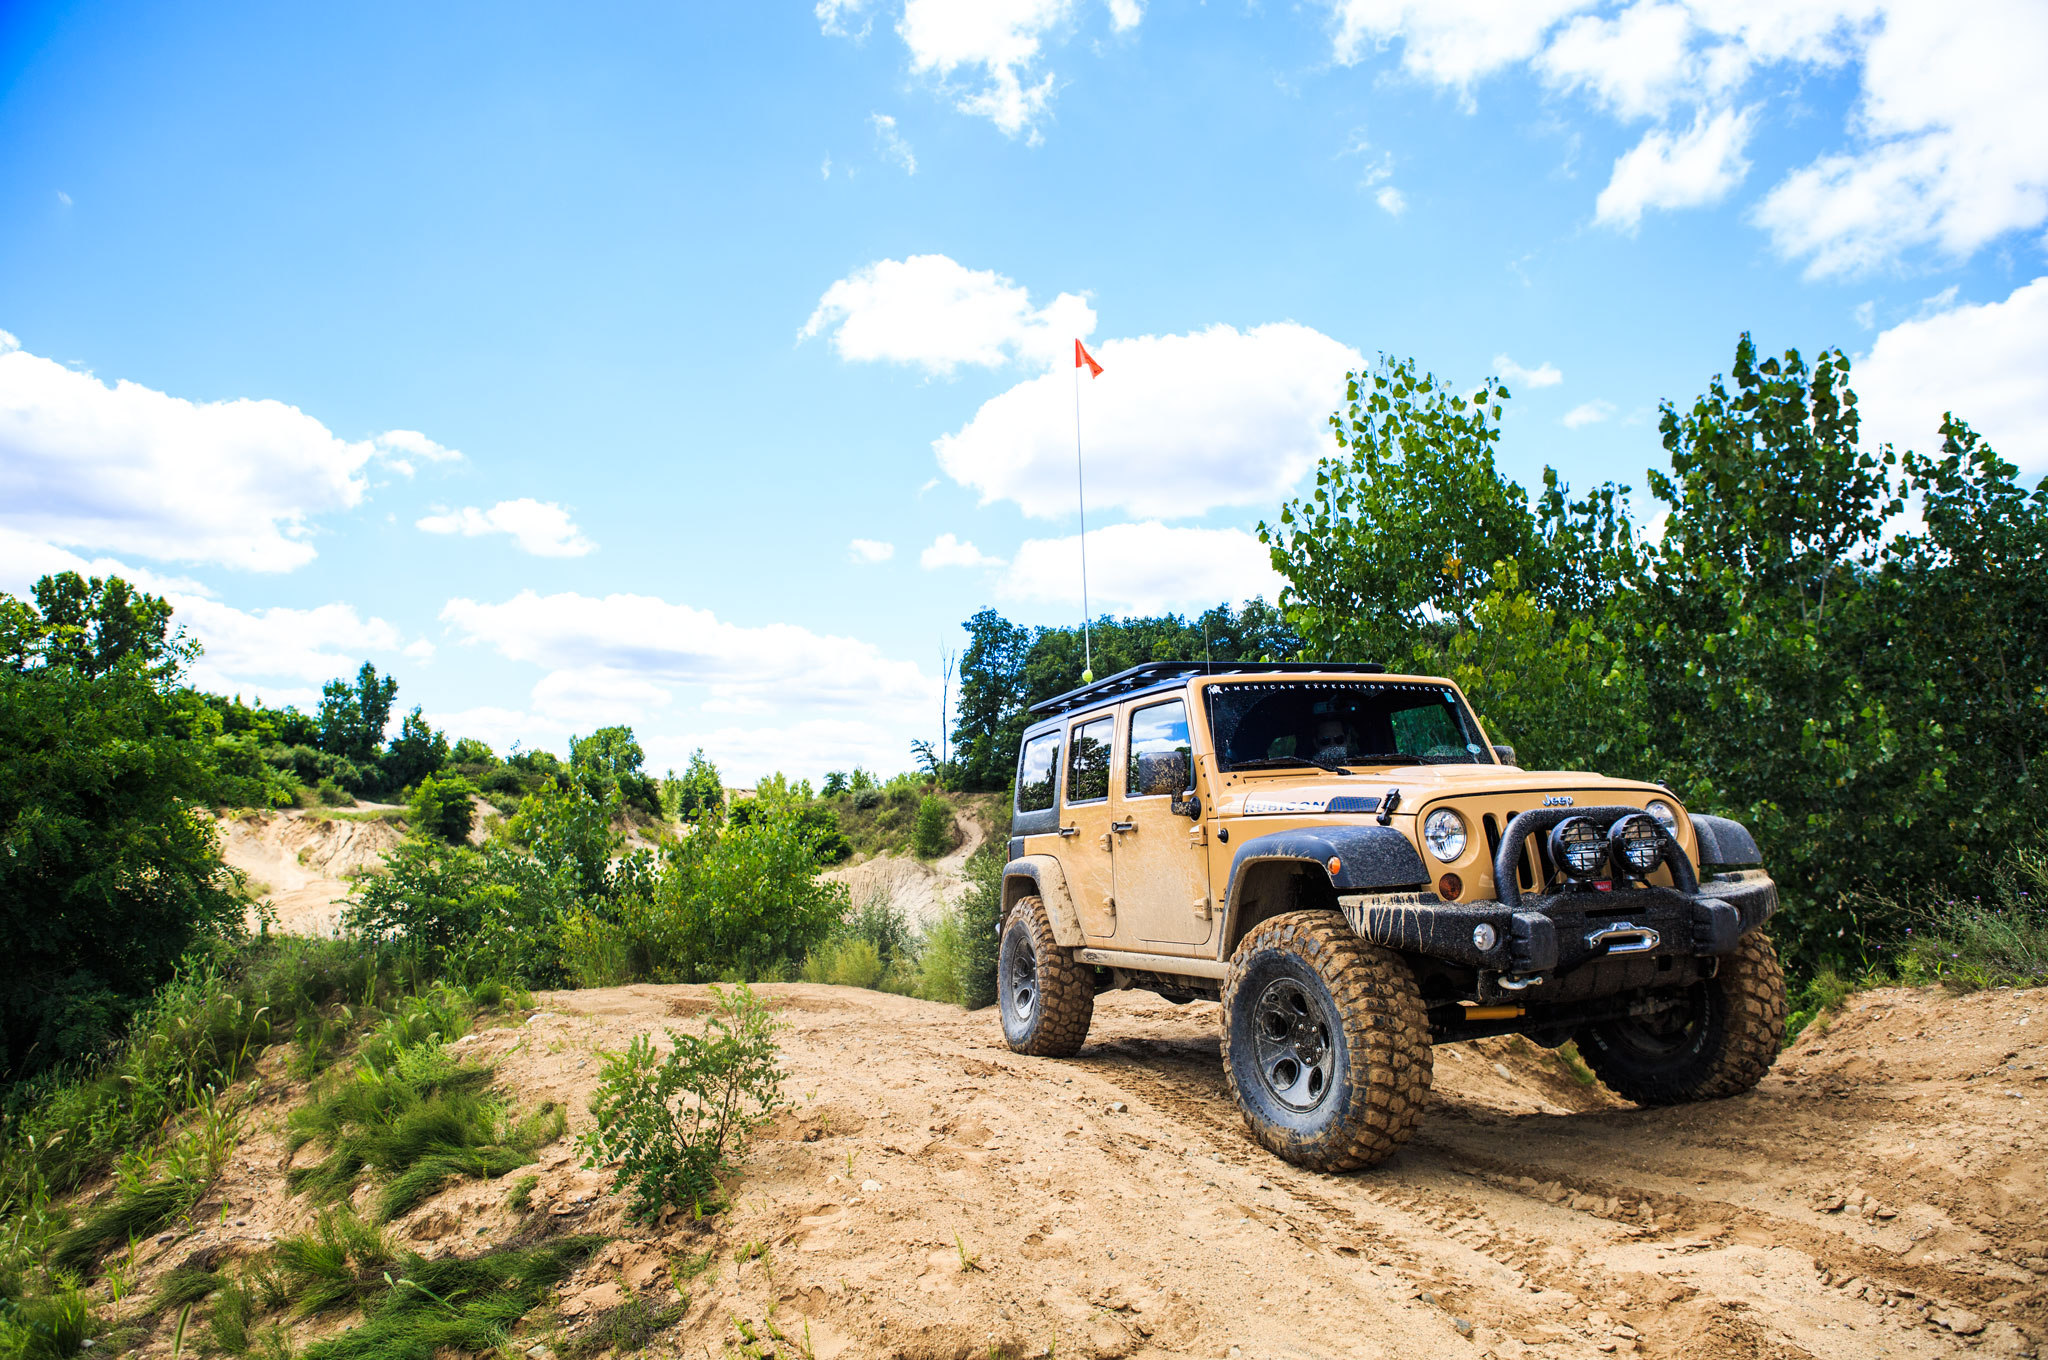 AEV Jeep Wrangler JK350 Front Right View 21